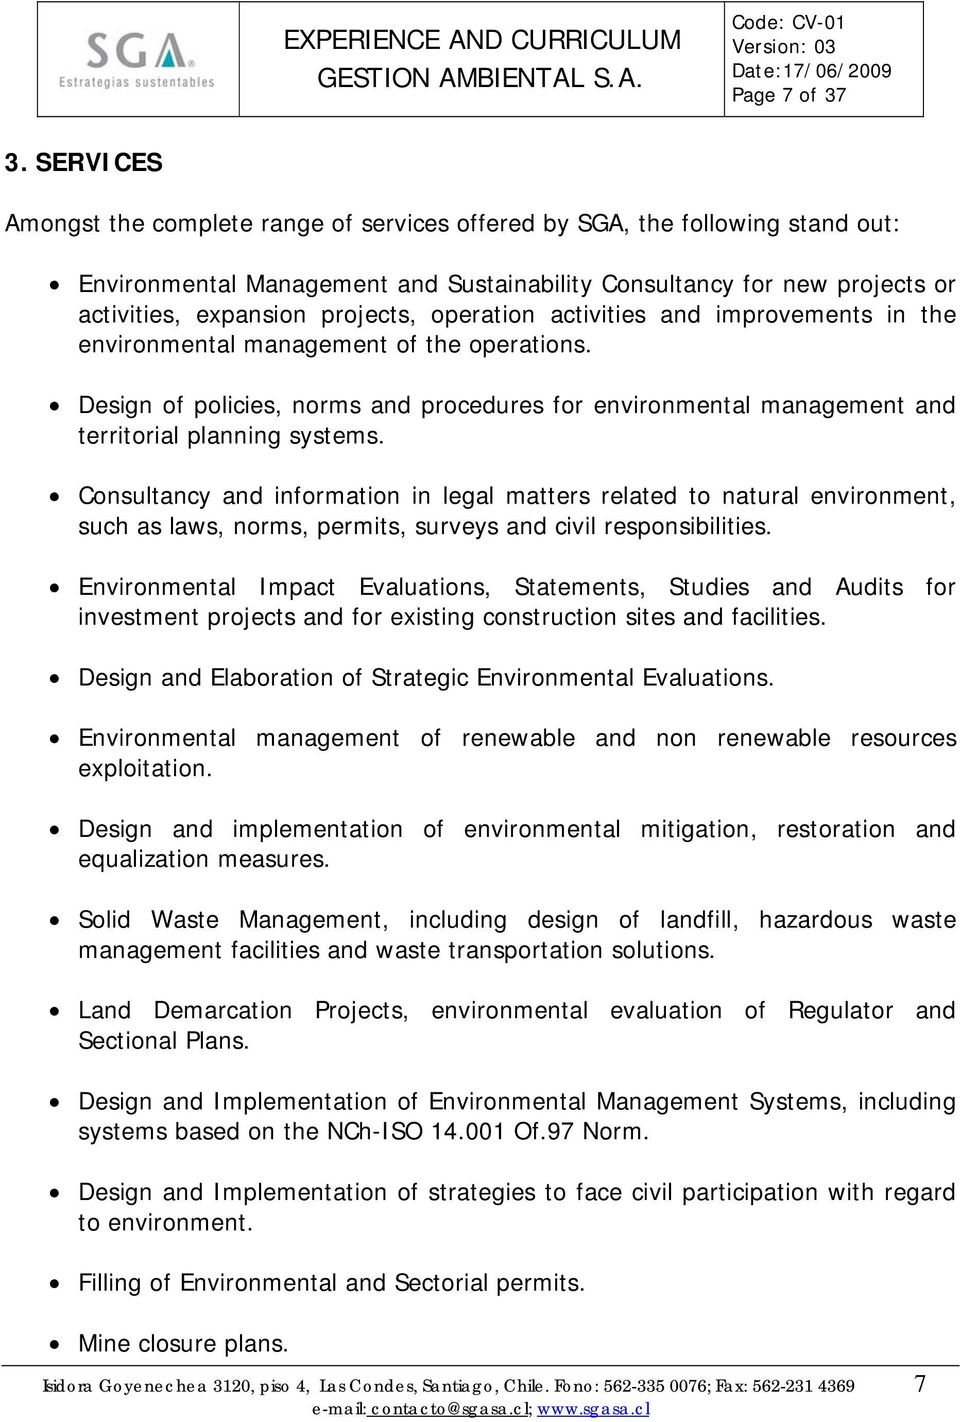 operation activities and improvements in the environmental management of the operations. Design of policies, norms and procedures for environmental management and territorial planning systems.